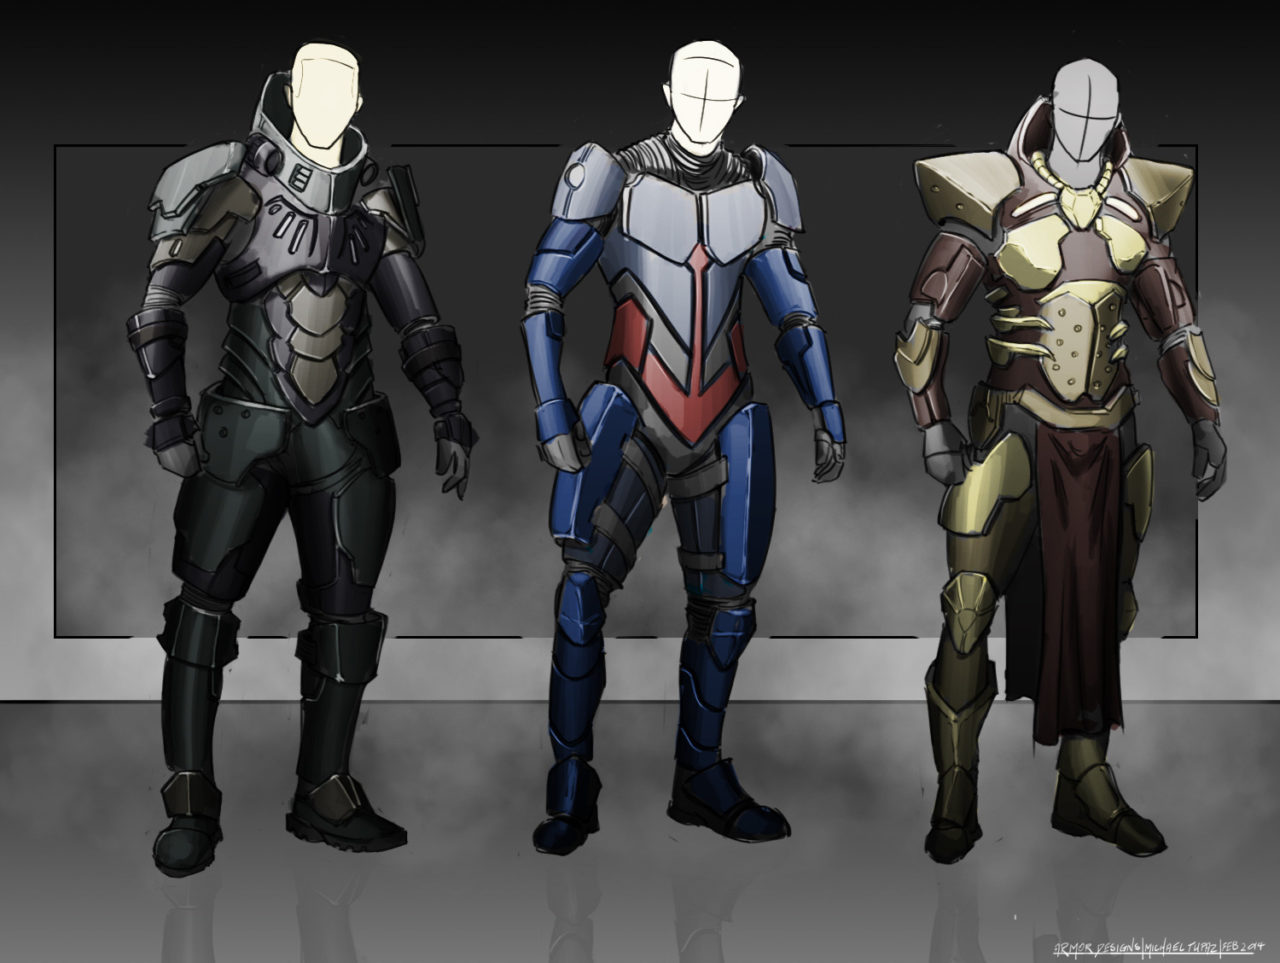 news_meet_gerard-michael-tupaz-armor-set4cleancolor